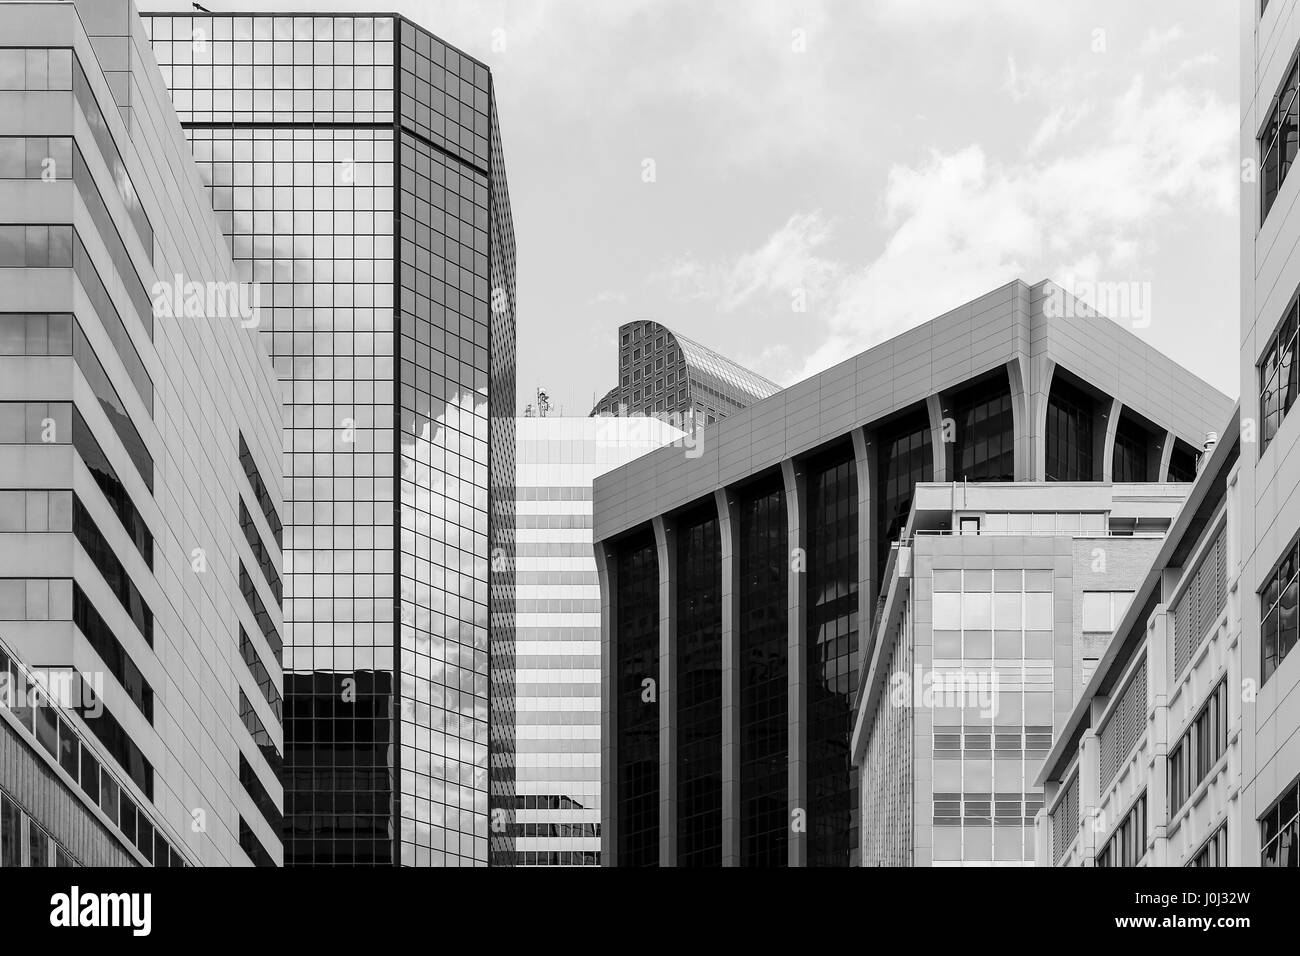 Denver, USA - May 25, 2016: Skyscrapers belonging to the World Trade Center office building complex. The picture - Stock Image